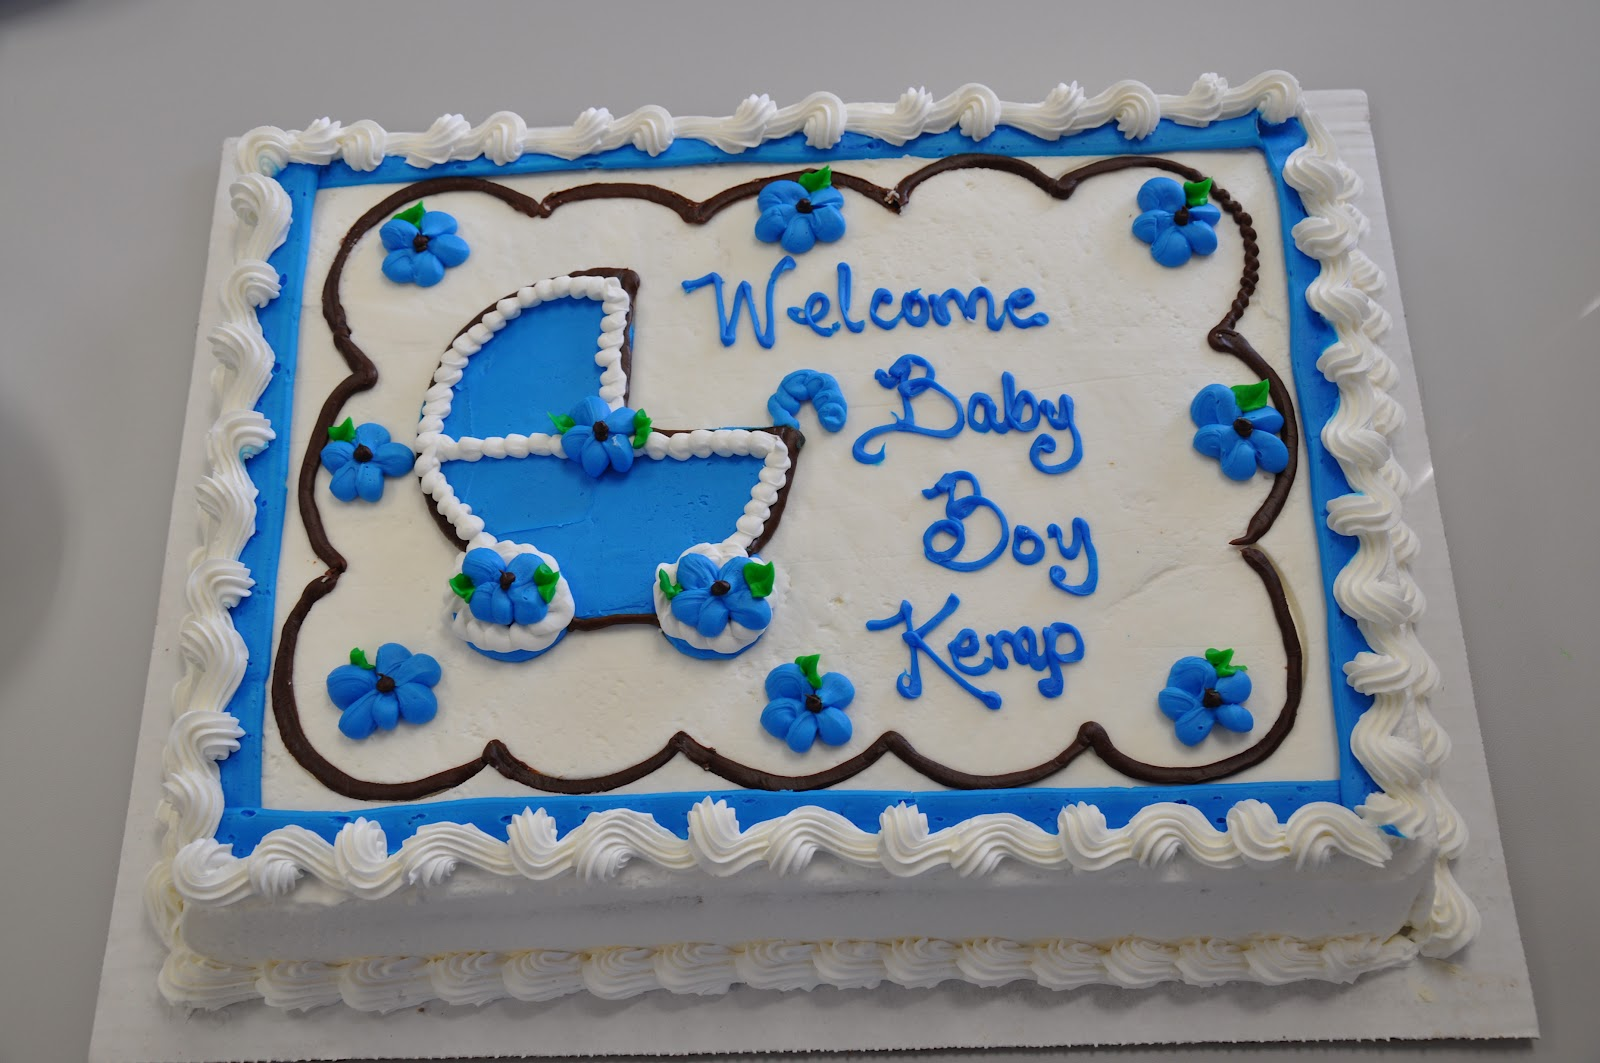 Costco Baby Shower Cake Designs and Pictures Order Bakery Data